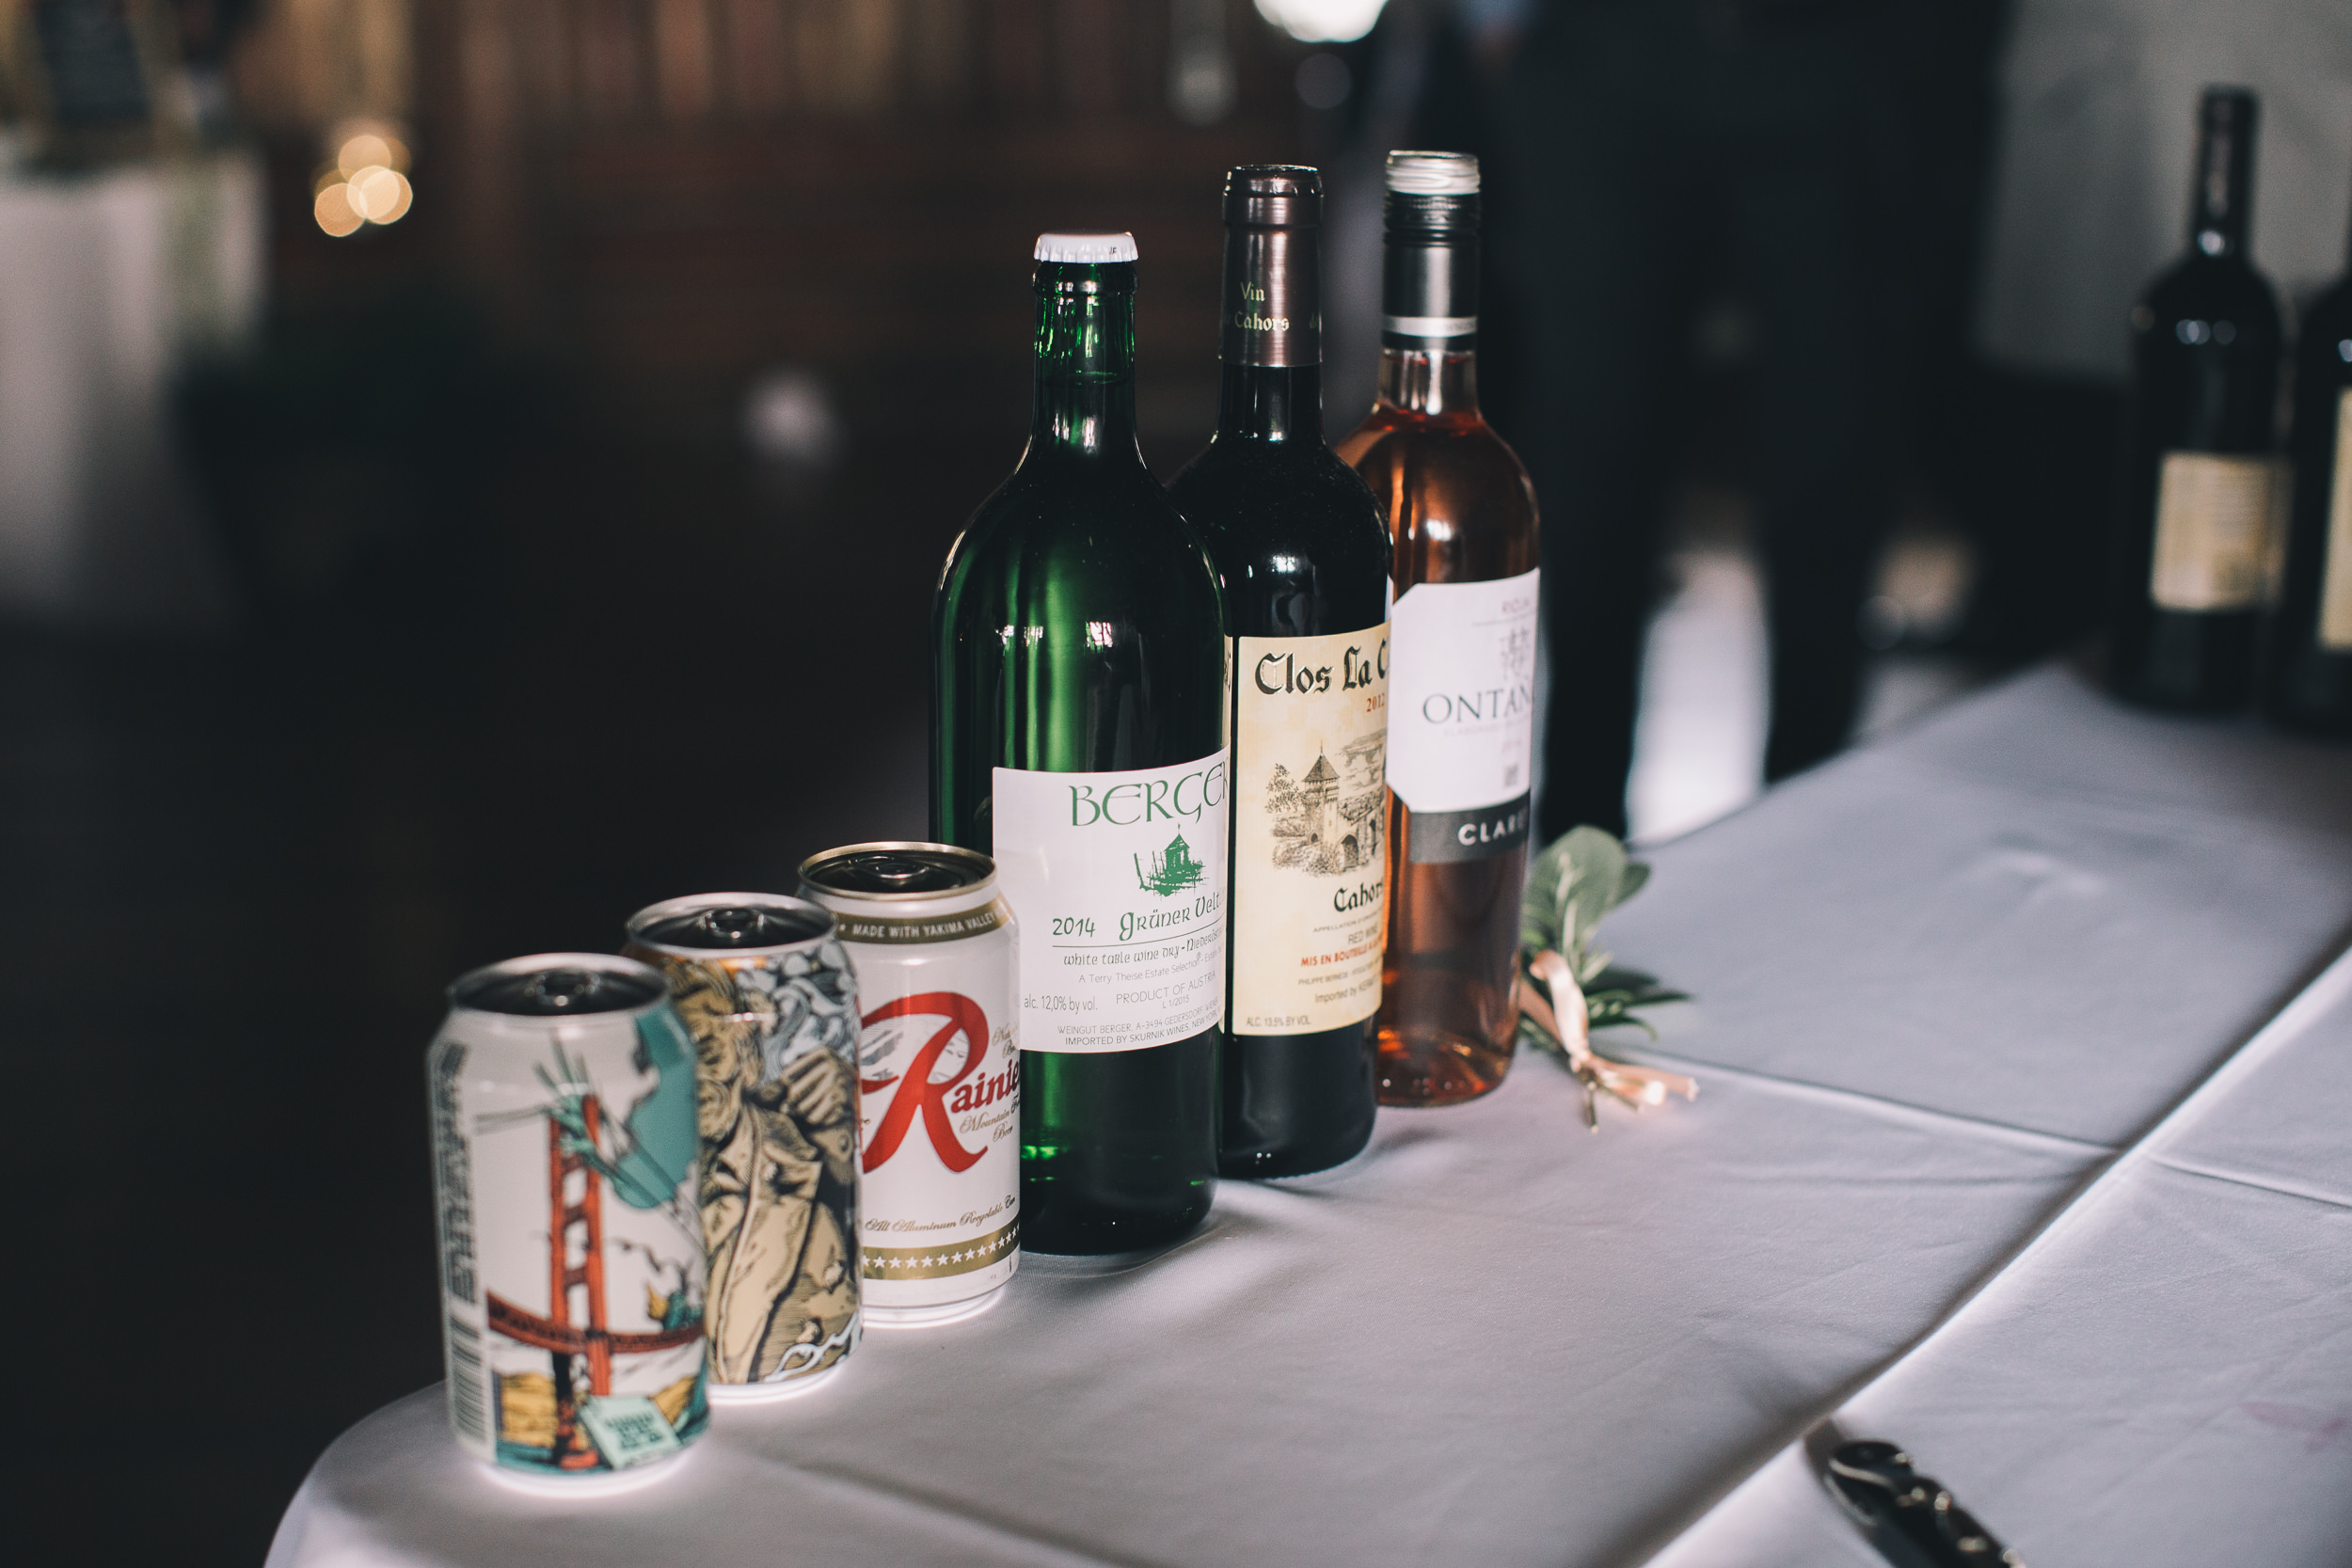 rainier beer and booze selection